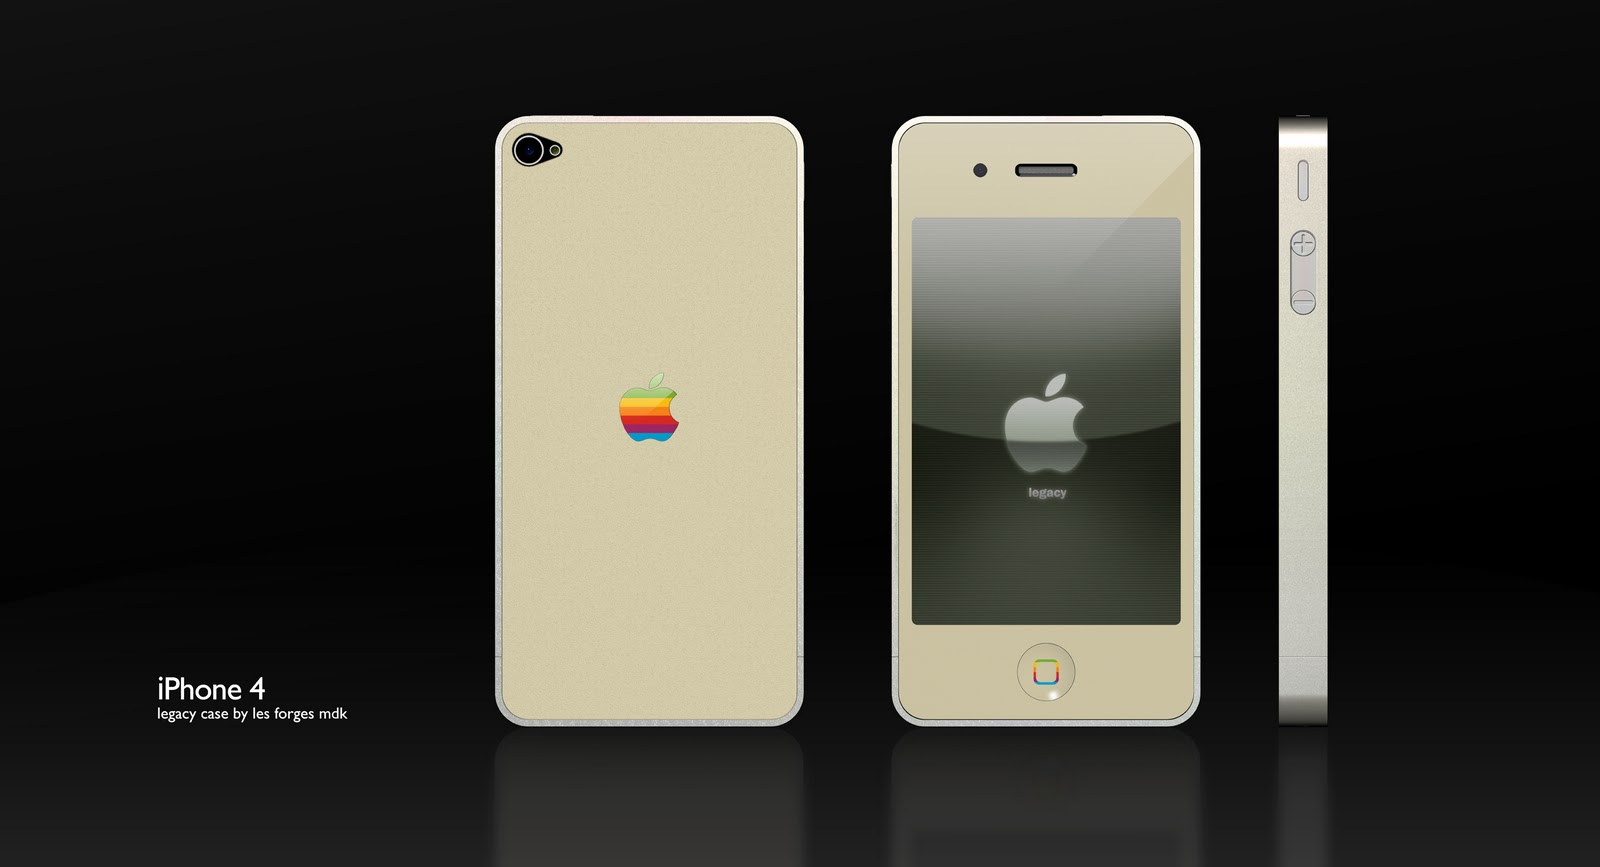 iPhone Legacy Case